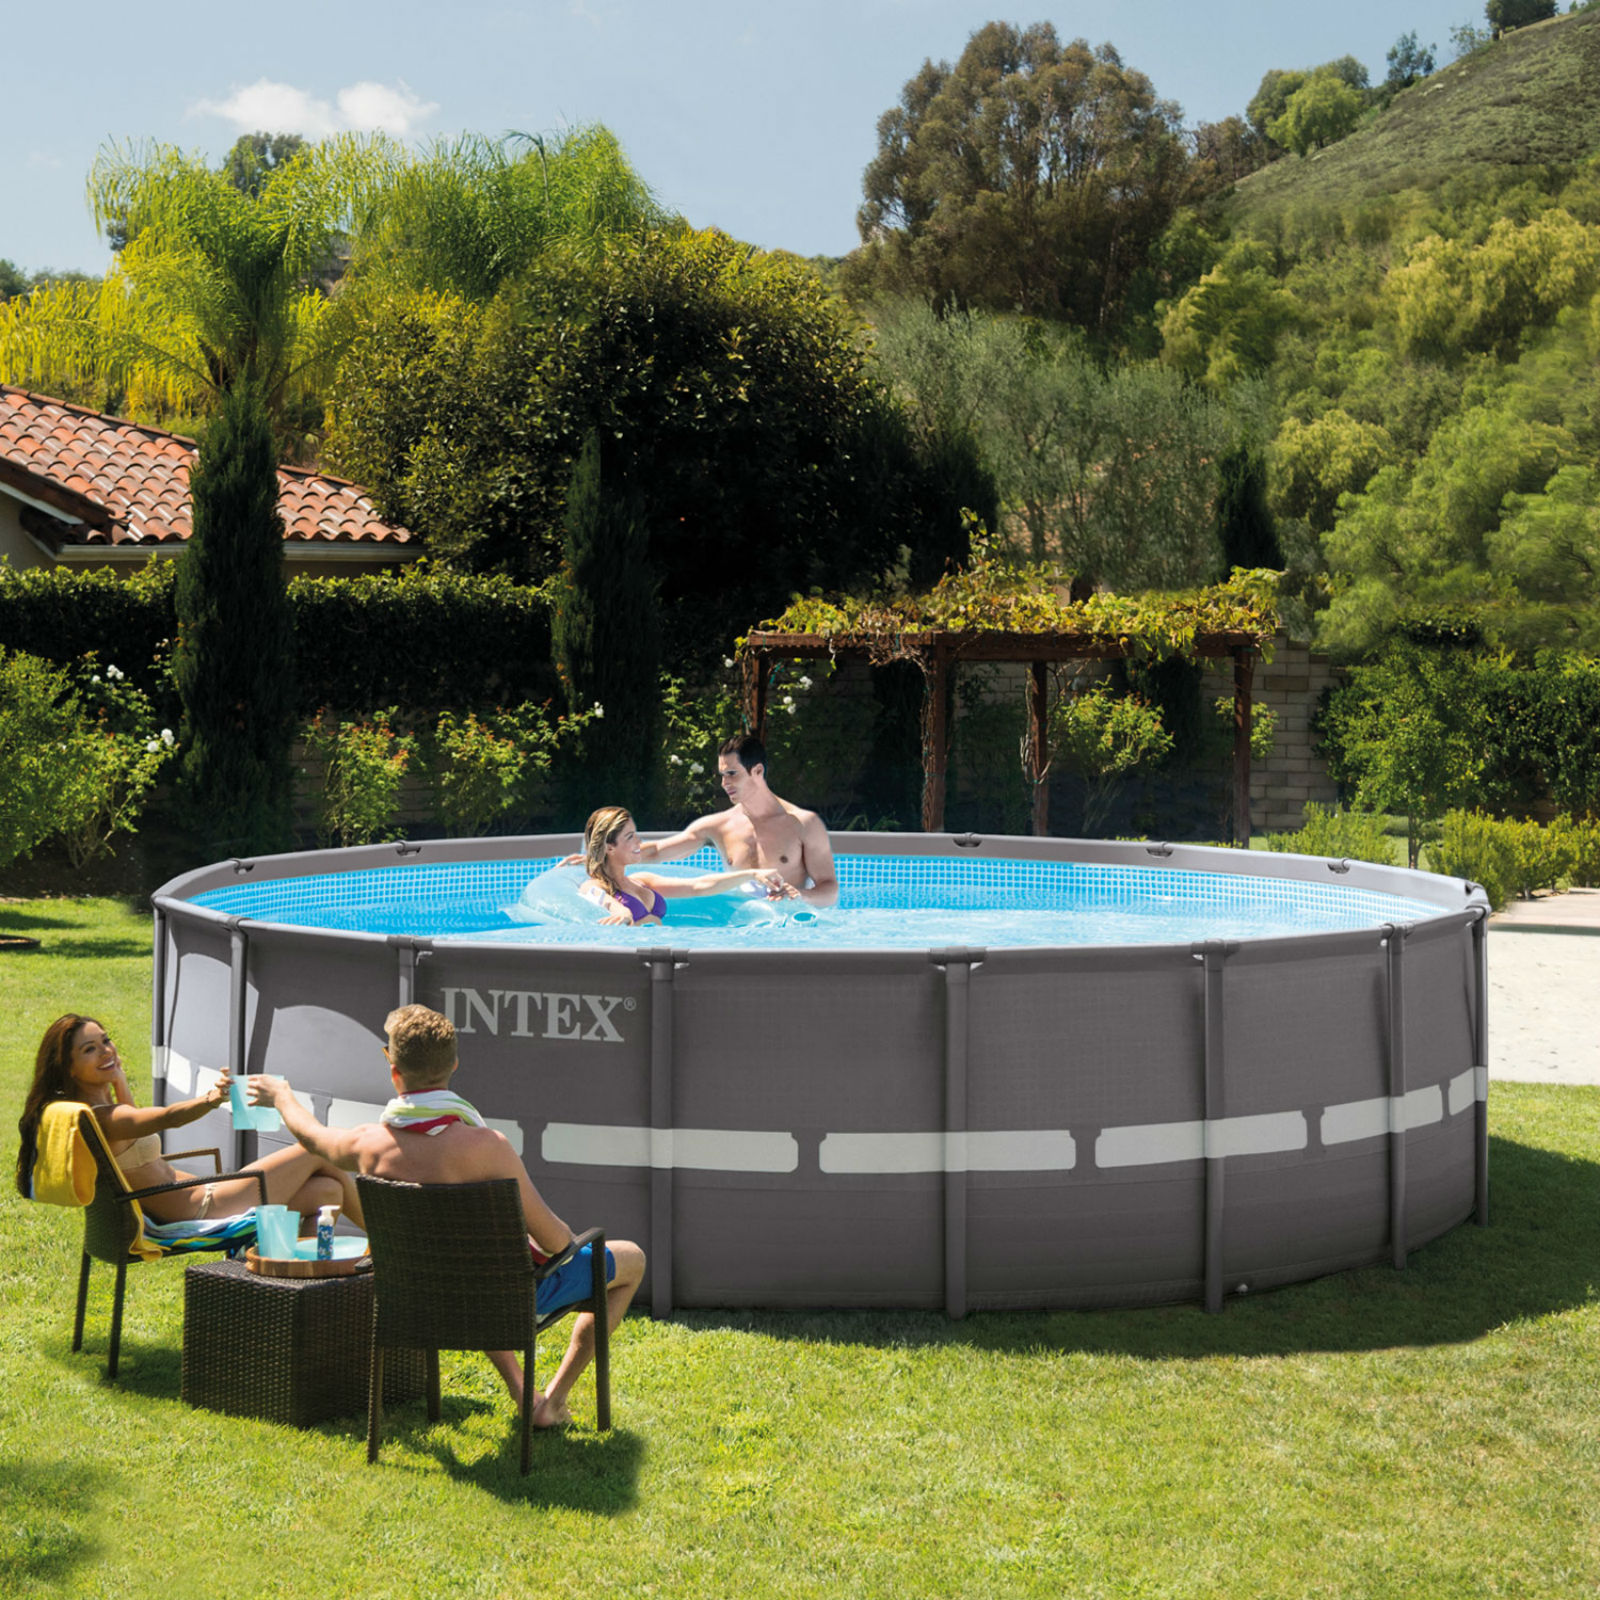 Intex Pool Frame Rund Intex 16 39 X 48 Quot Round Ultra Frame Pool With Filter Pump